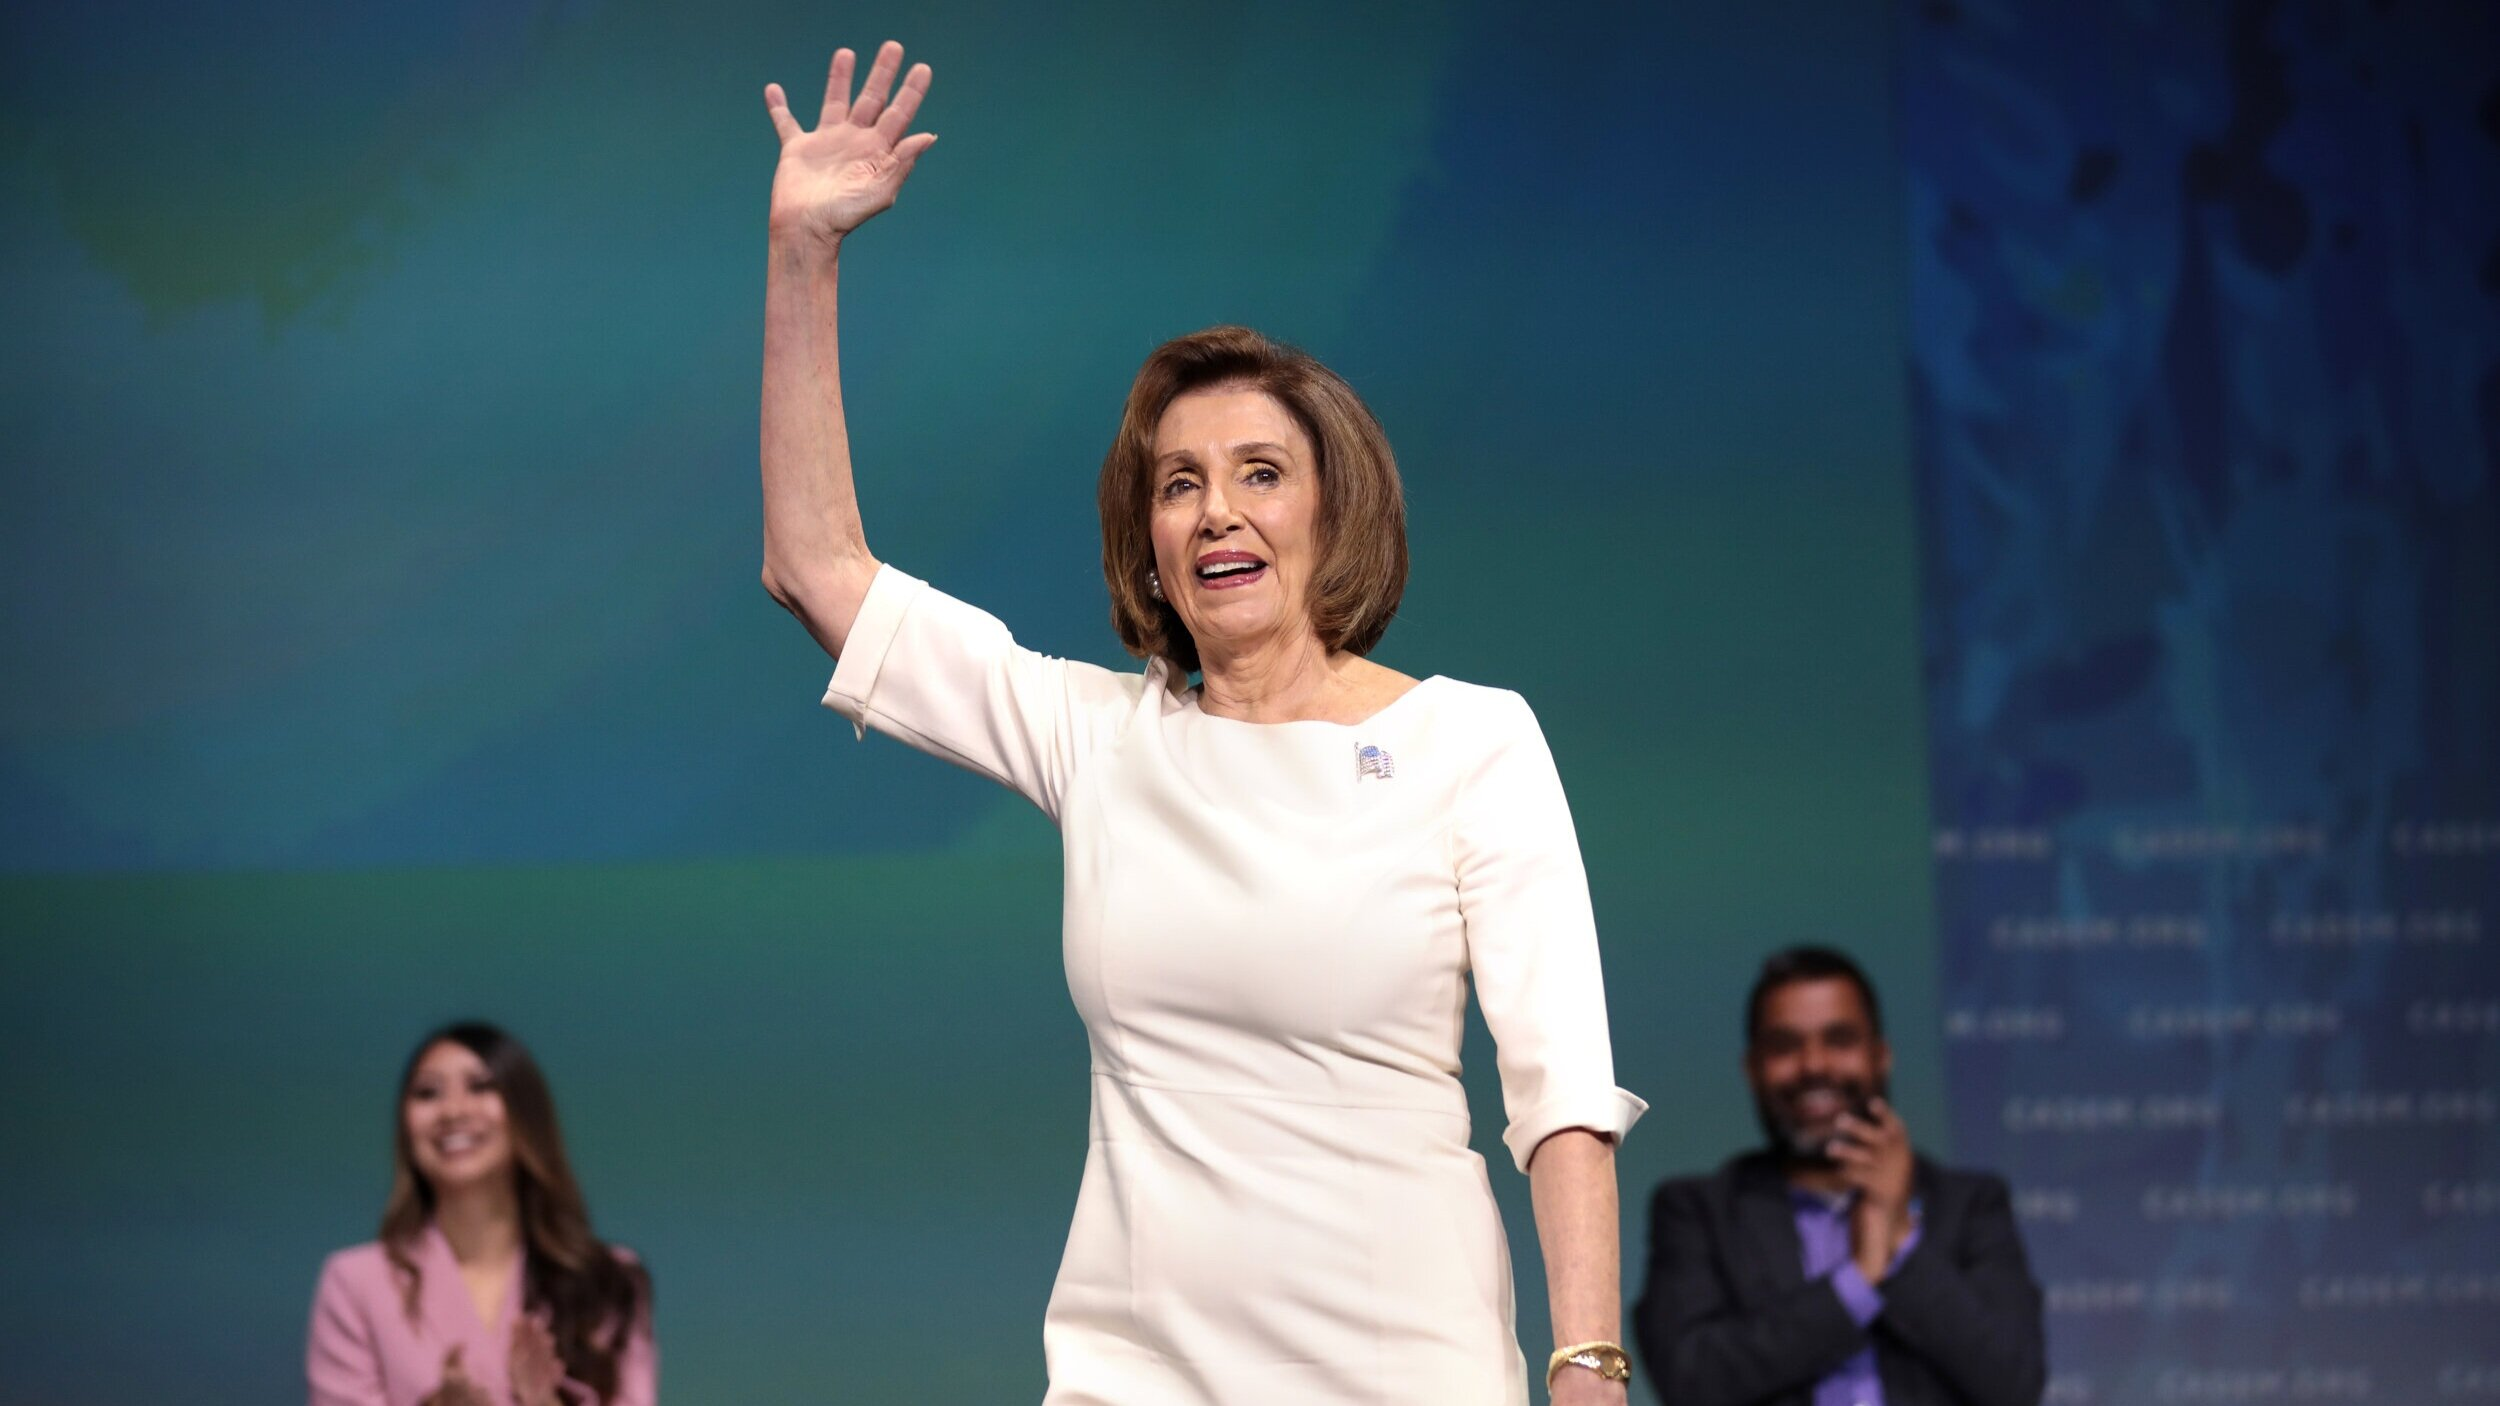 Nancy+Pelosi+takes+the+podium+at+the+Democratic+Party%27s+state+convention+in+California.jpg